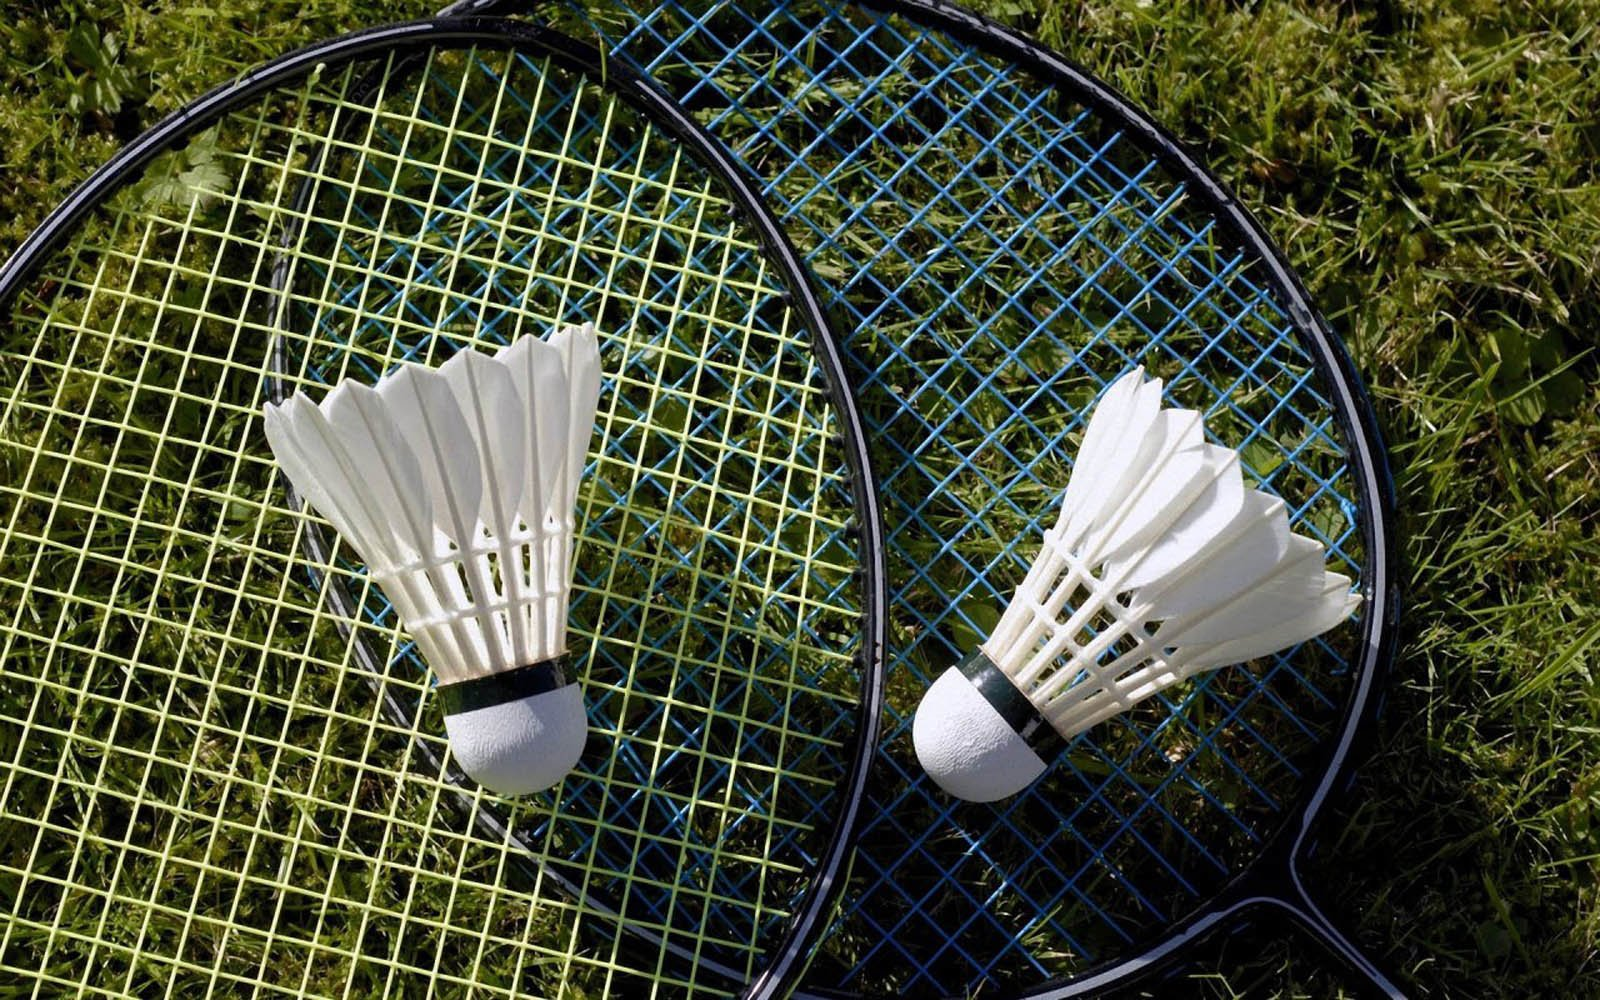 How To Take Proper Care Of Your Badminton Racket? - Playo